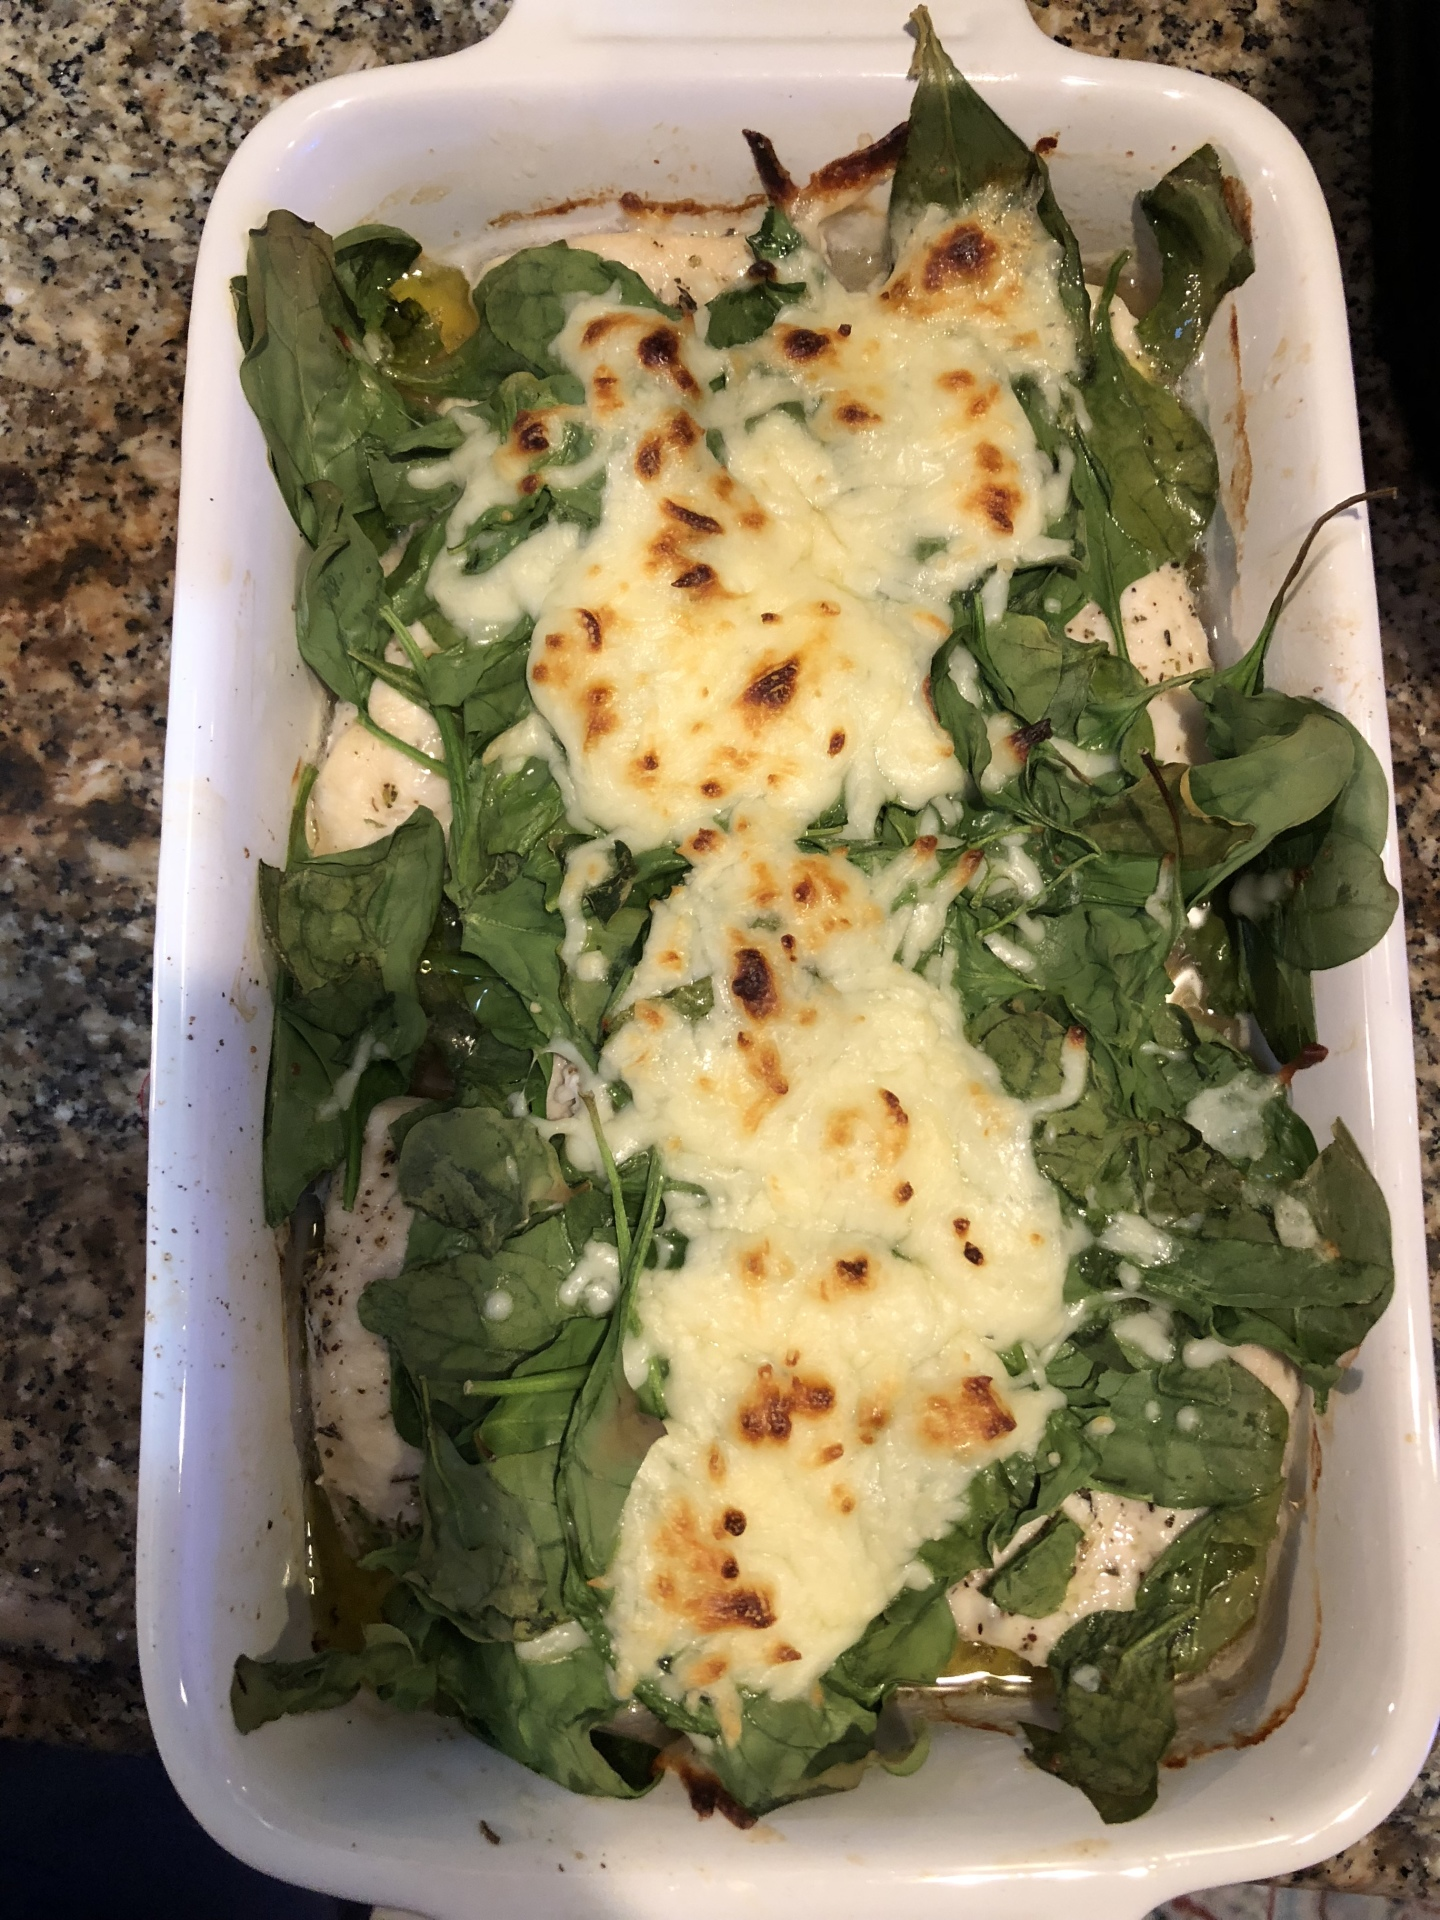 Spinach and Chicken Bake